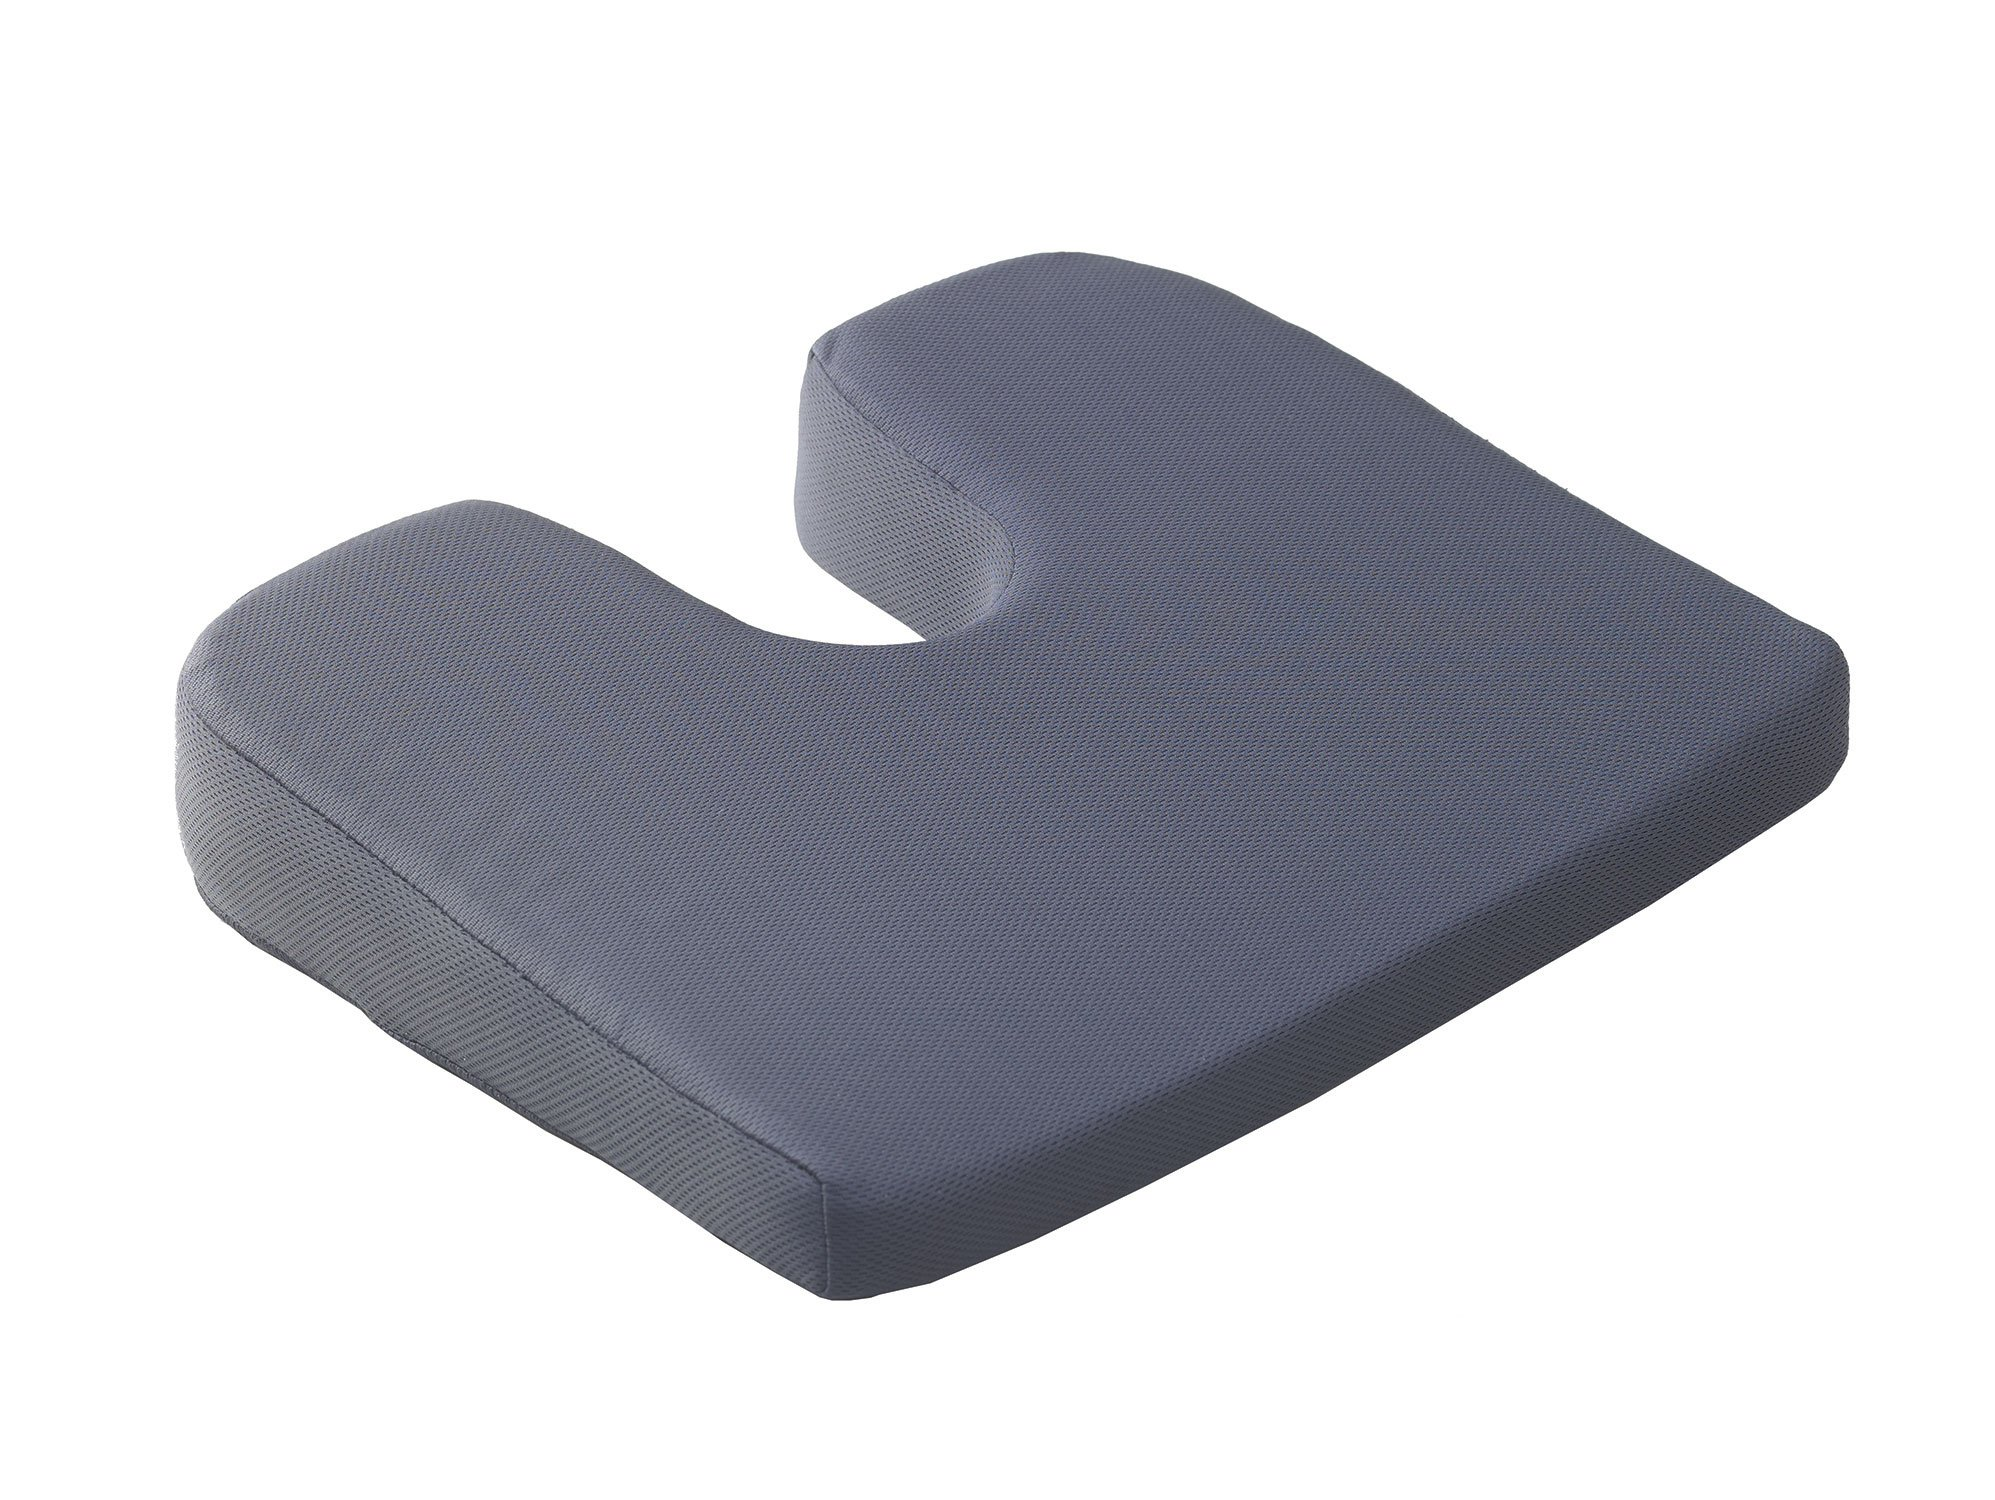 OPTP Coccyx Pillow Seat Cushion